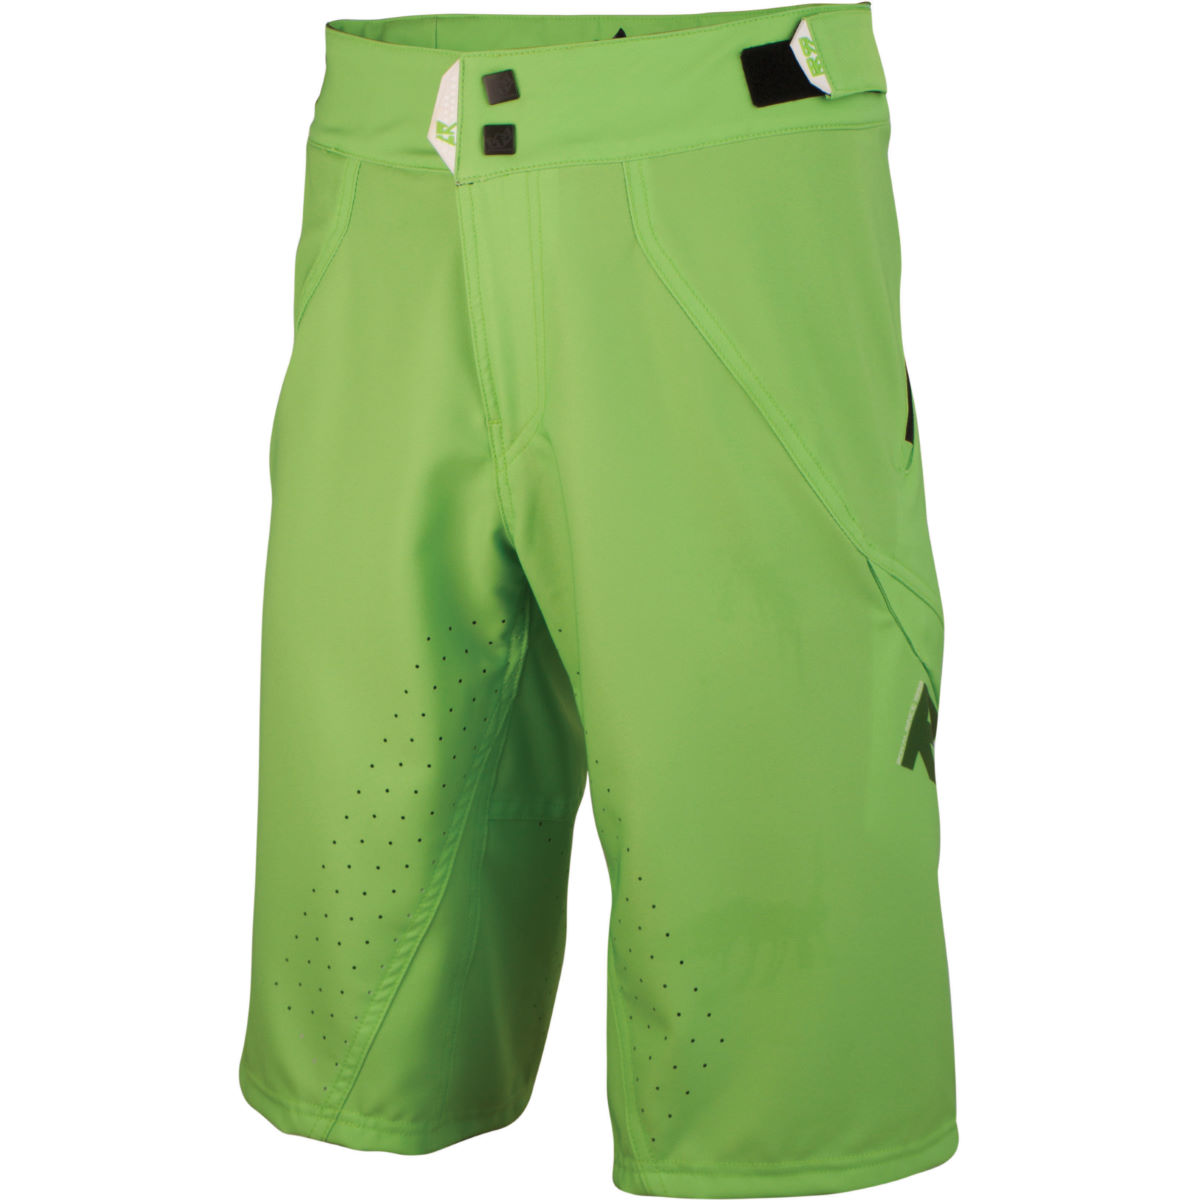 Royal Drift Short - Bermudas